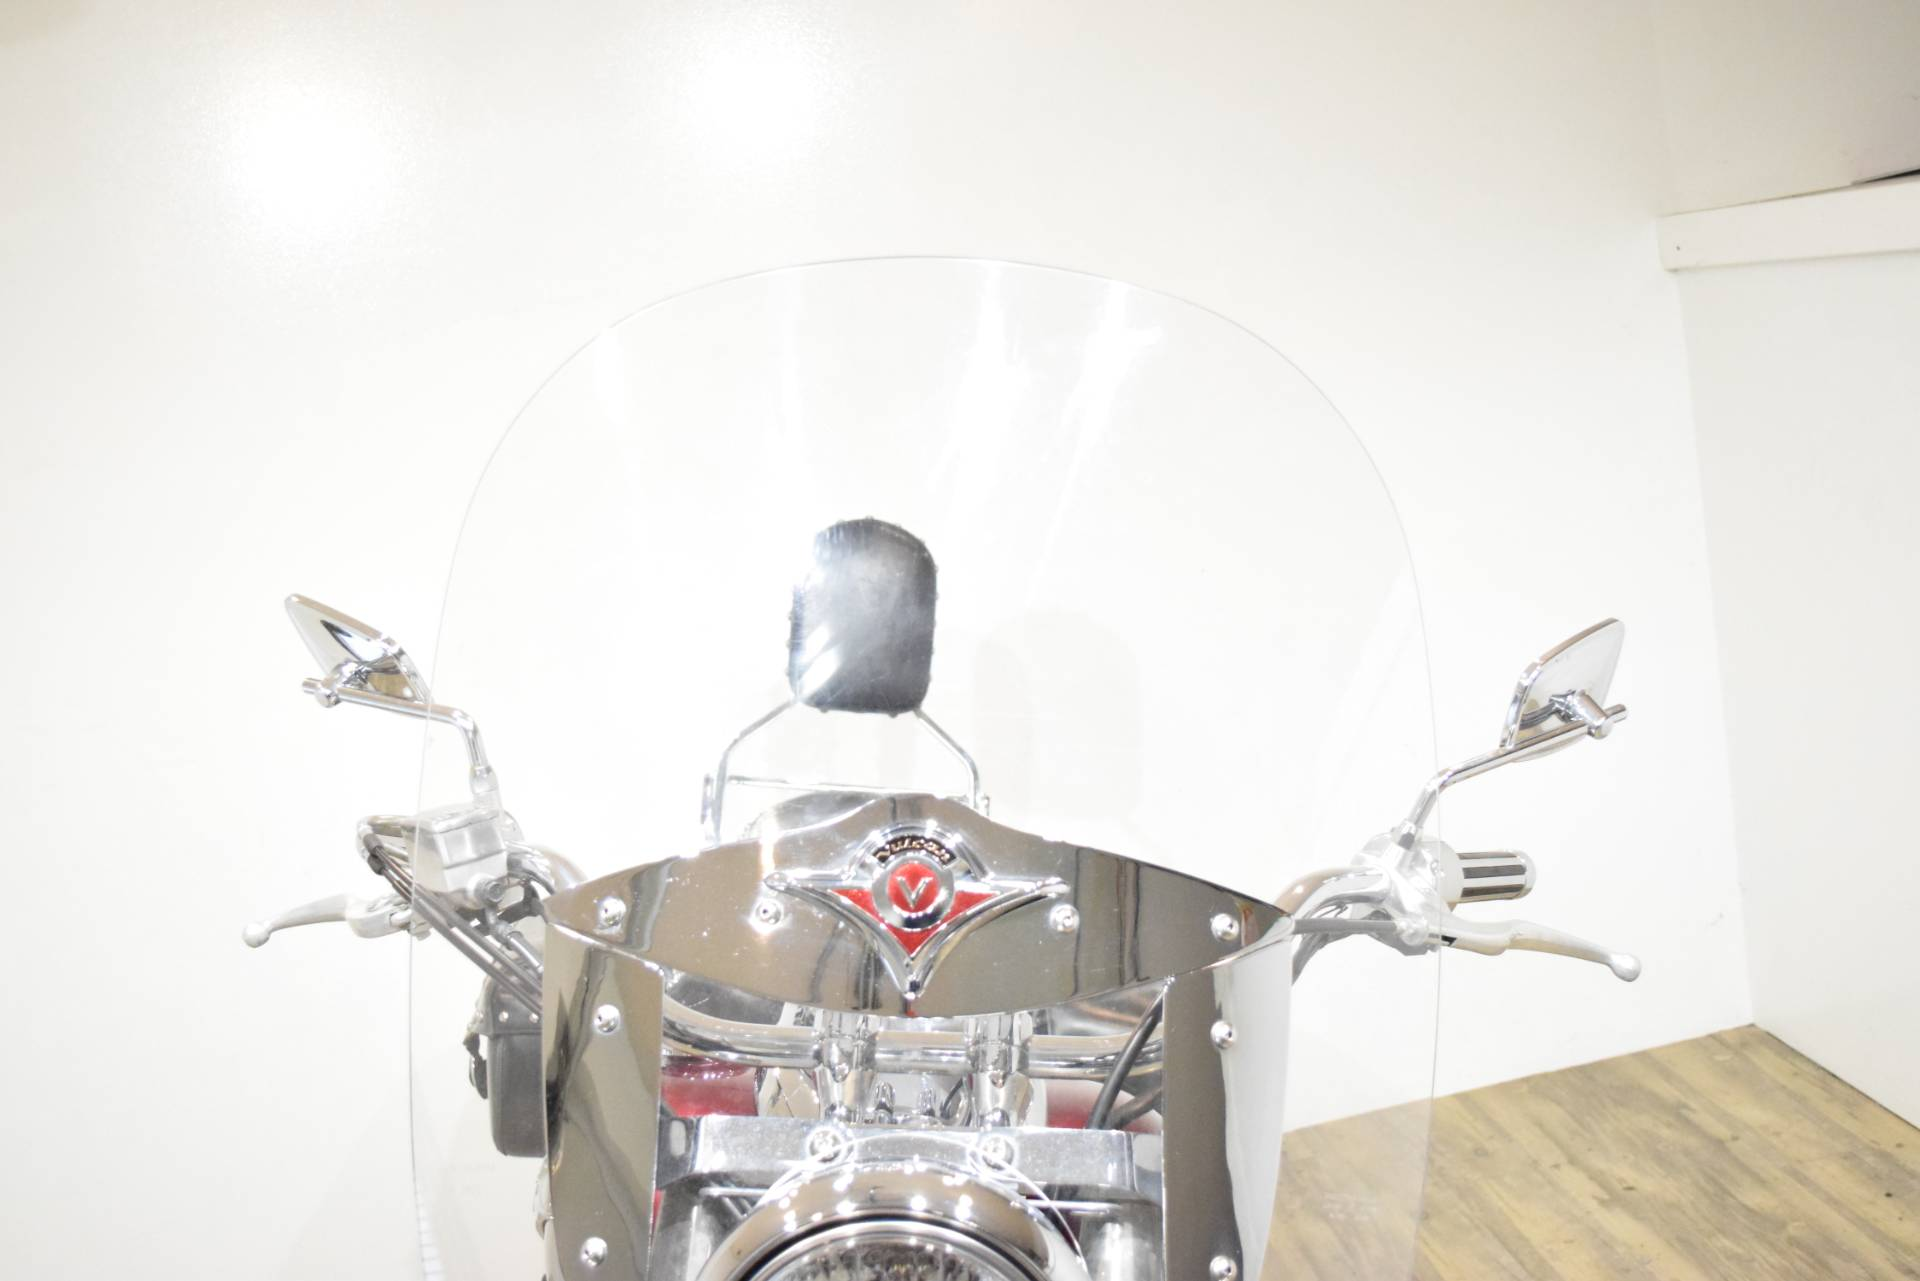 2009 Kawasaki Vulcan® 900 Classic LT in Wauconda, Illinois - Photo 13